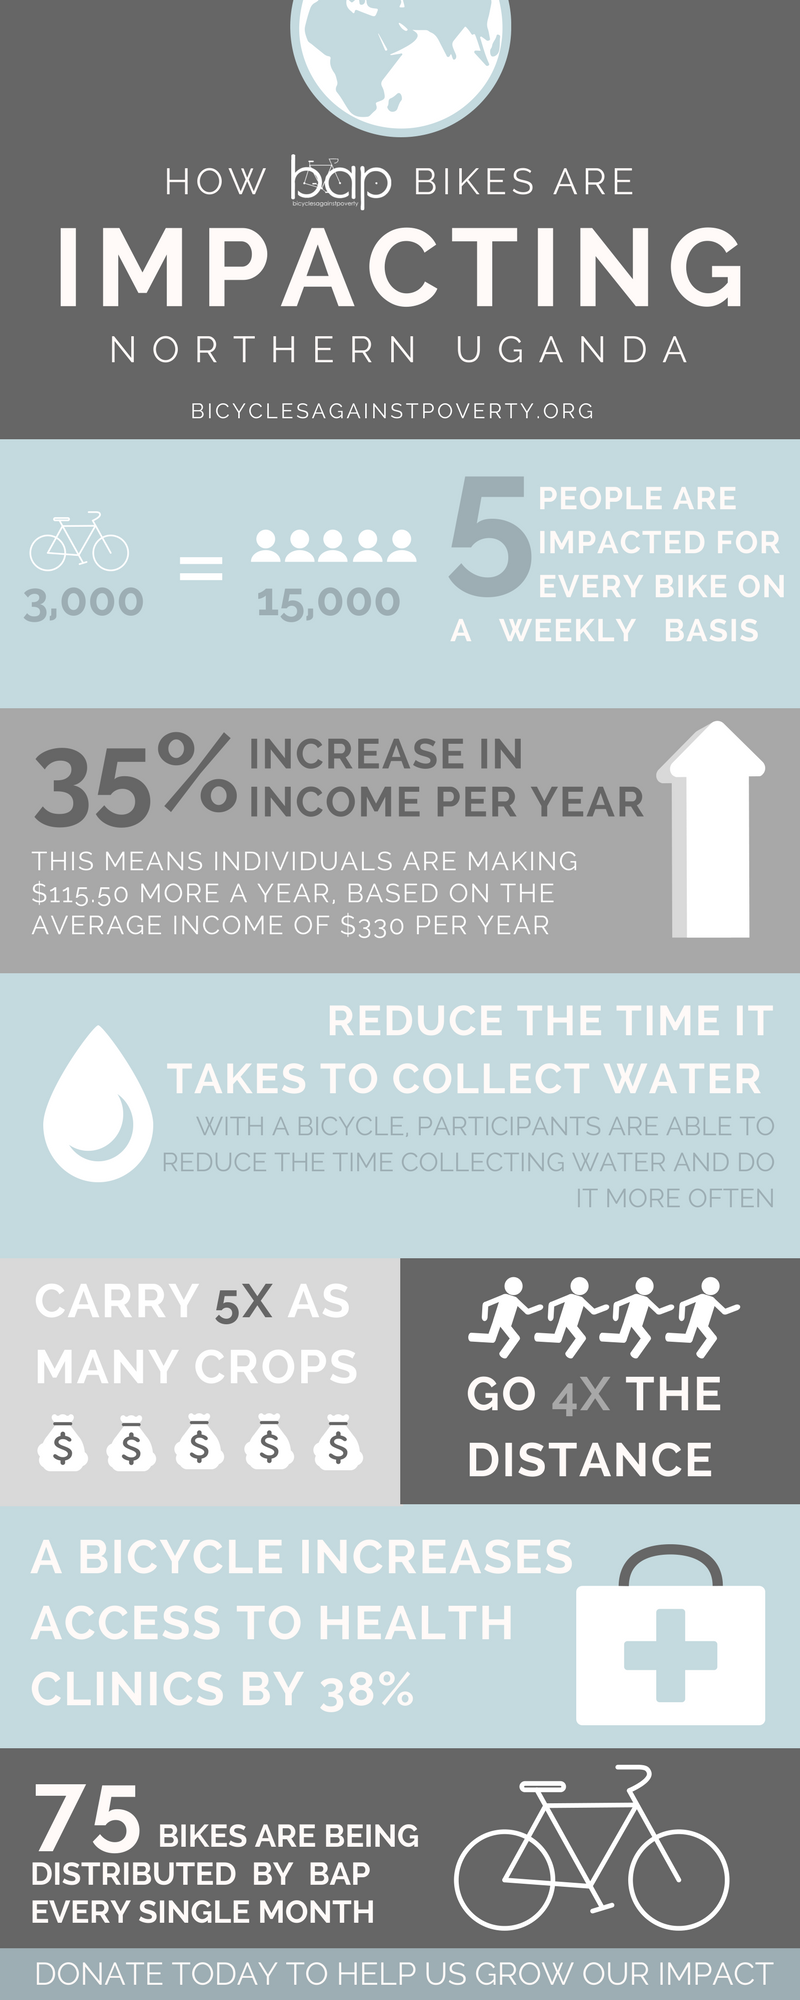 bicyclesagainstpoverty infographic.png